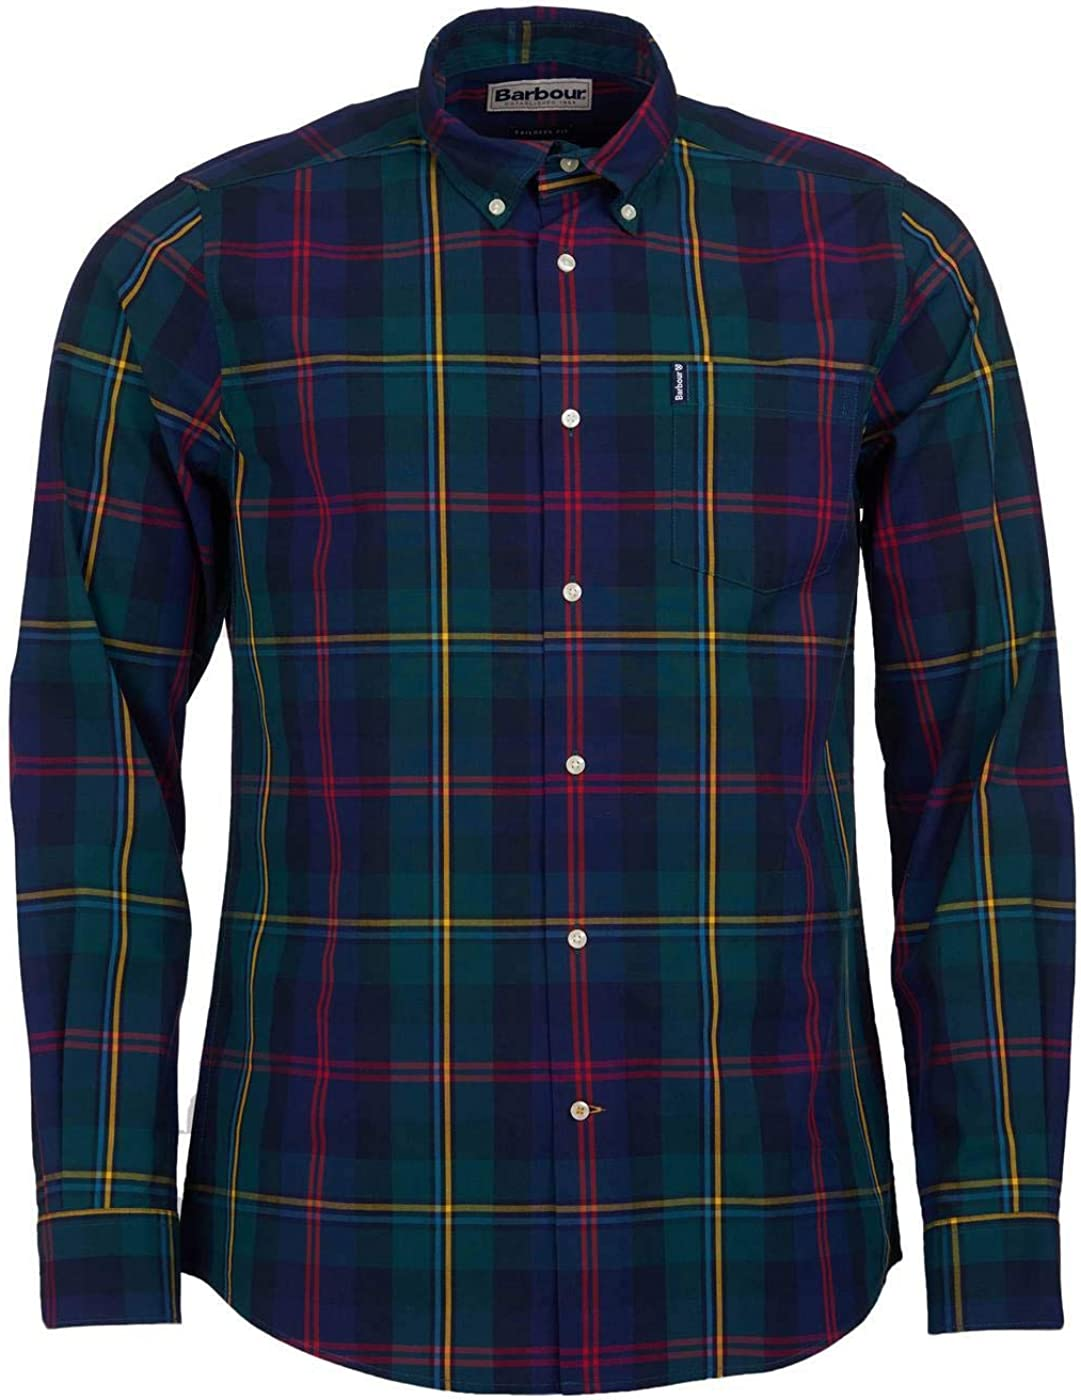 Barbour Highland Check Shirt Green-L: Amazon.es: Ropa y accesorios